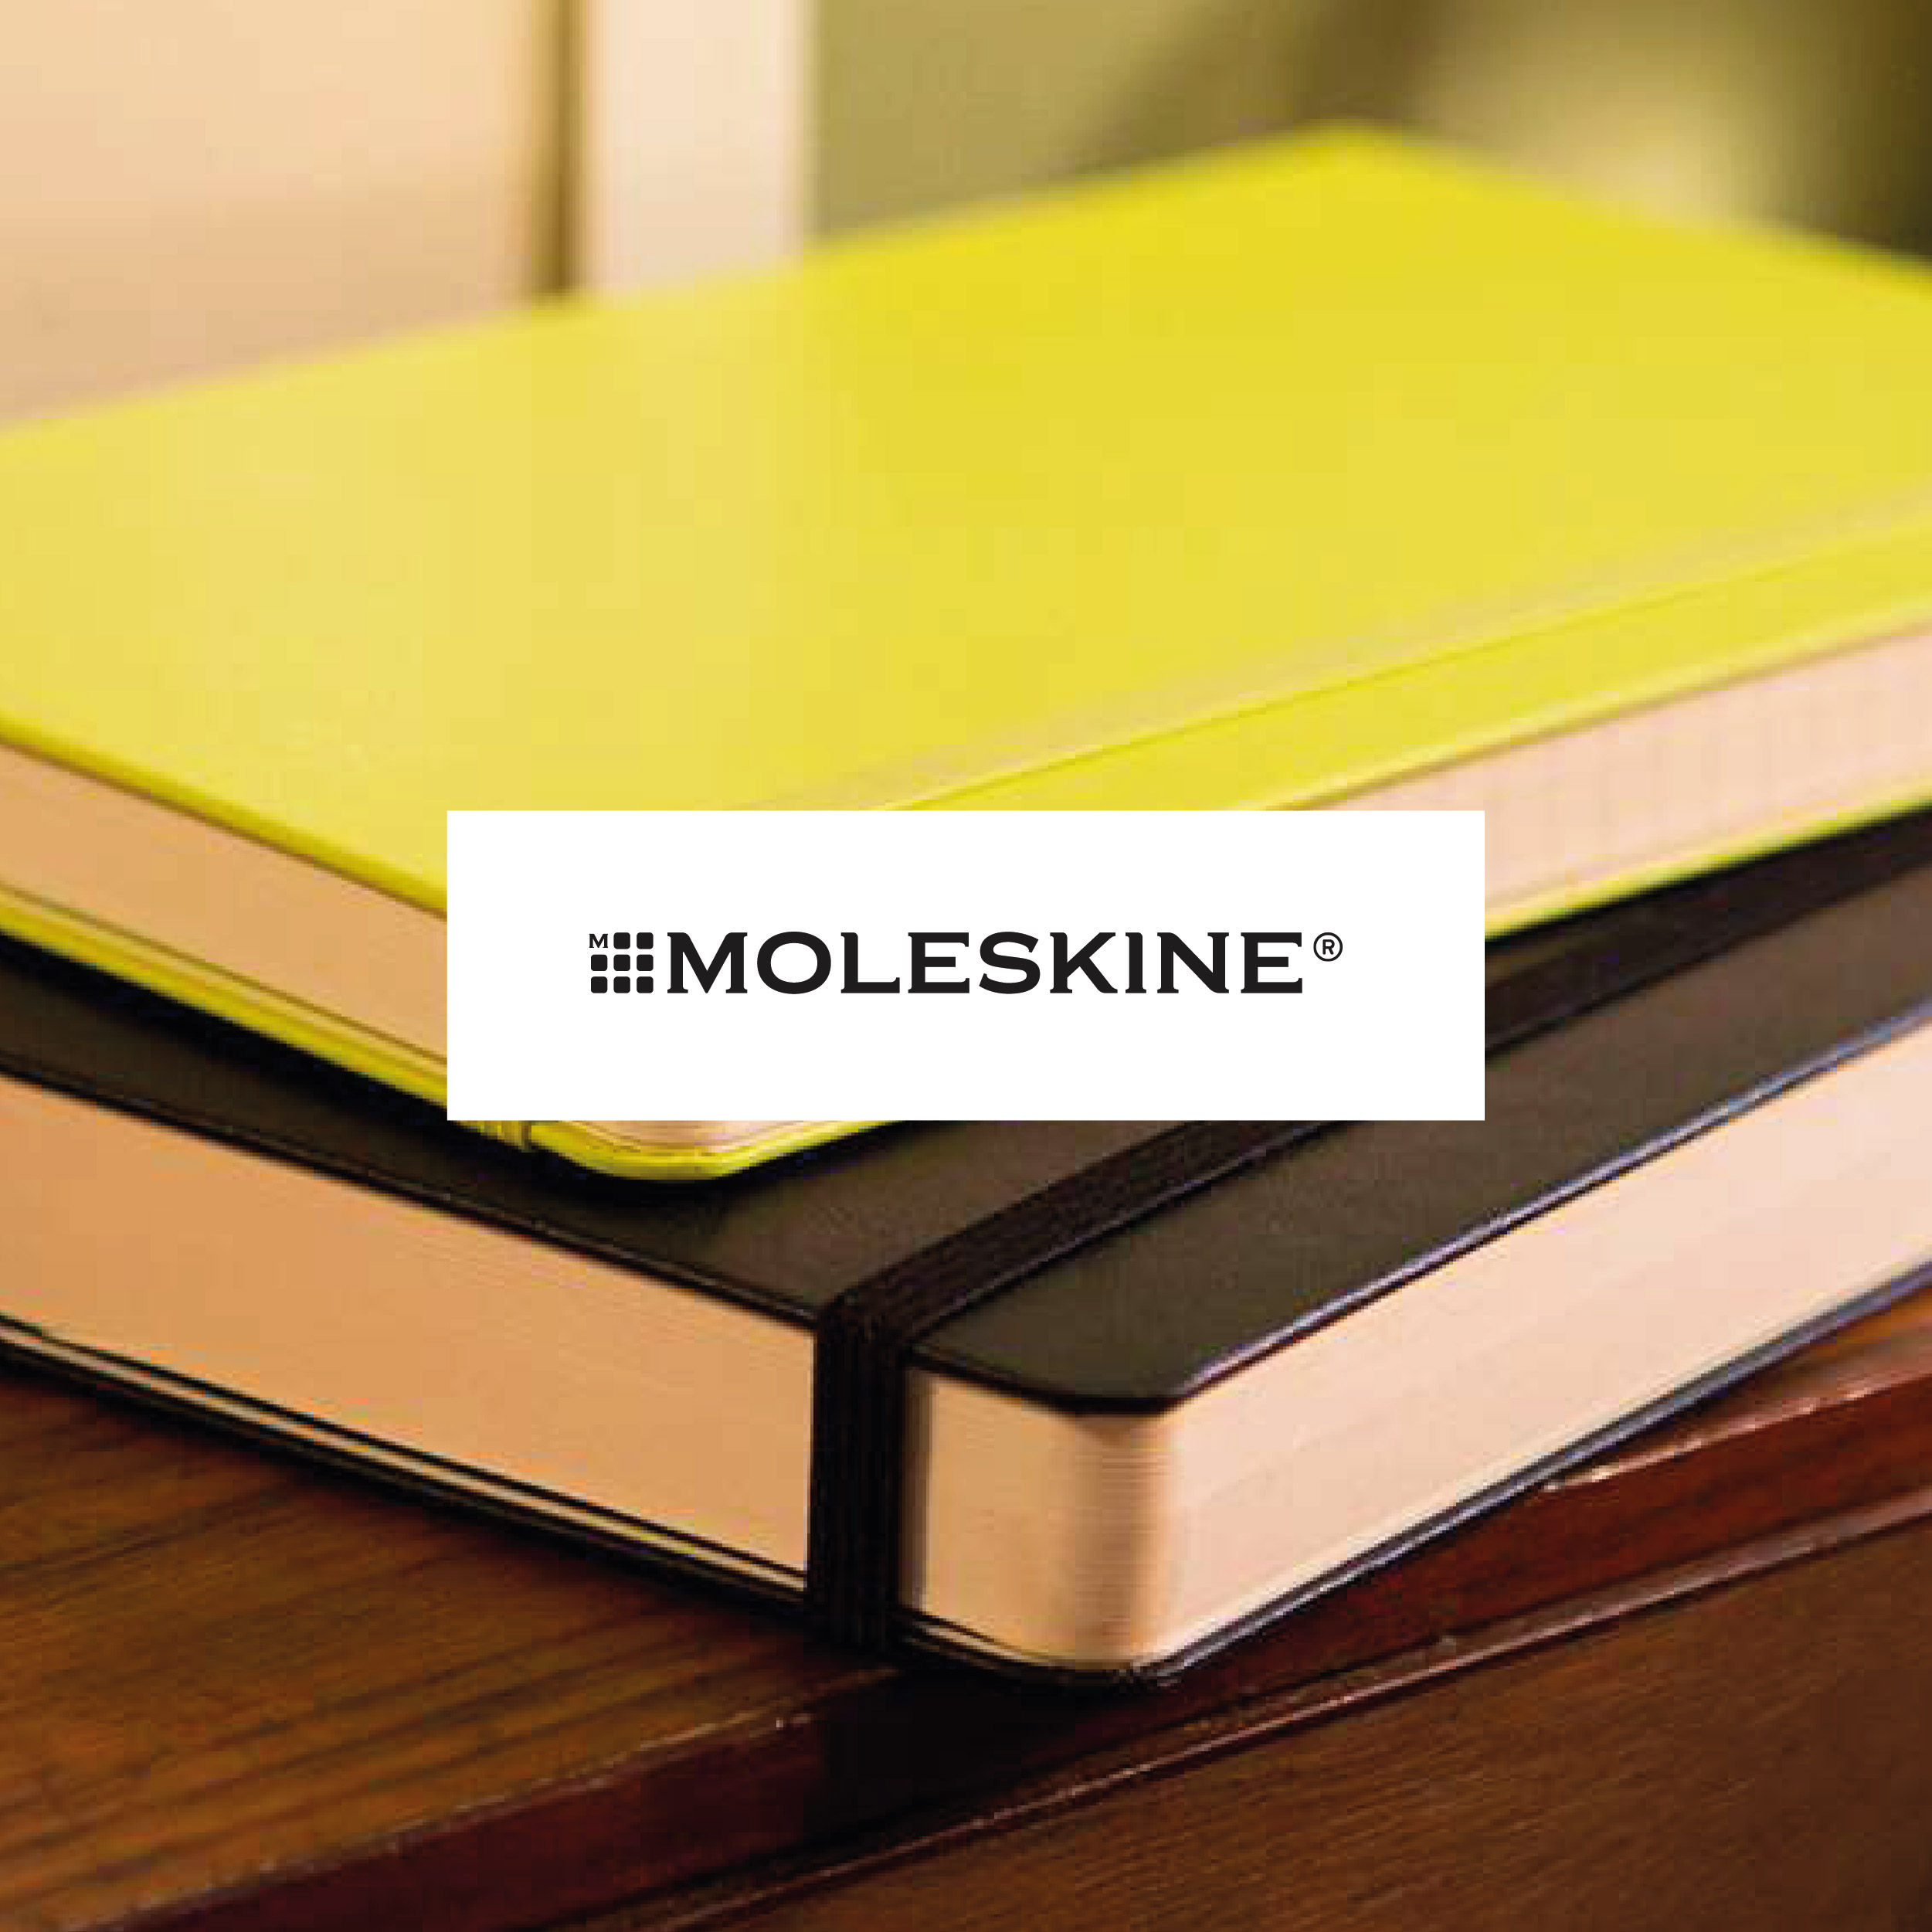 PromoBrand_Moleskine_Promotional_Merchandise_Brands_Bounce_Creative_Designs